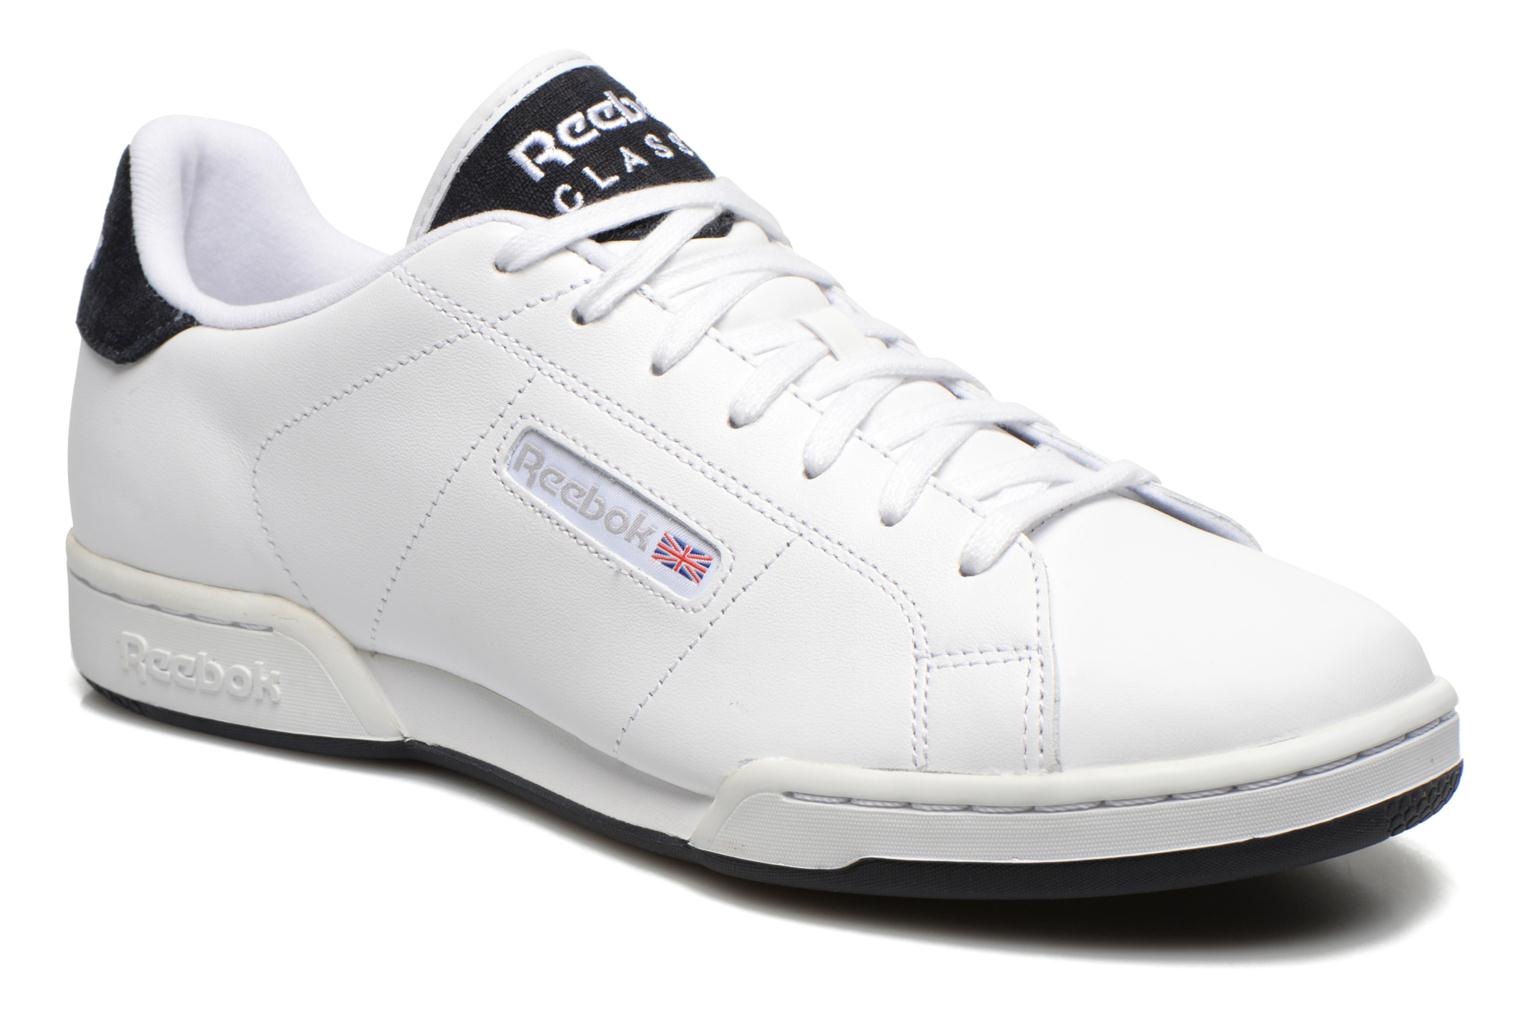 Sneakers Npc Rad Pop by Reebok